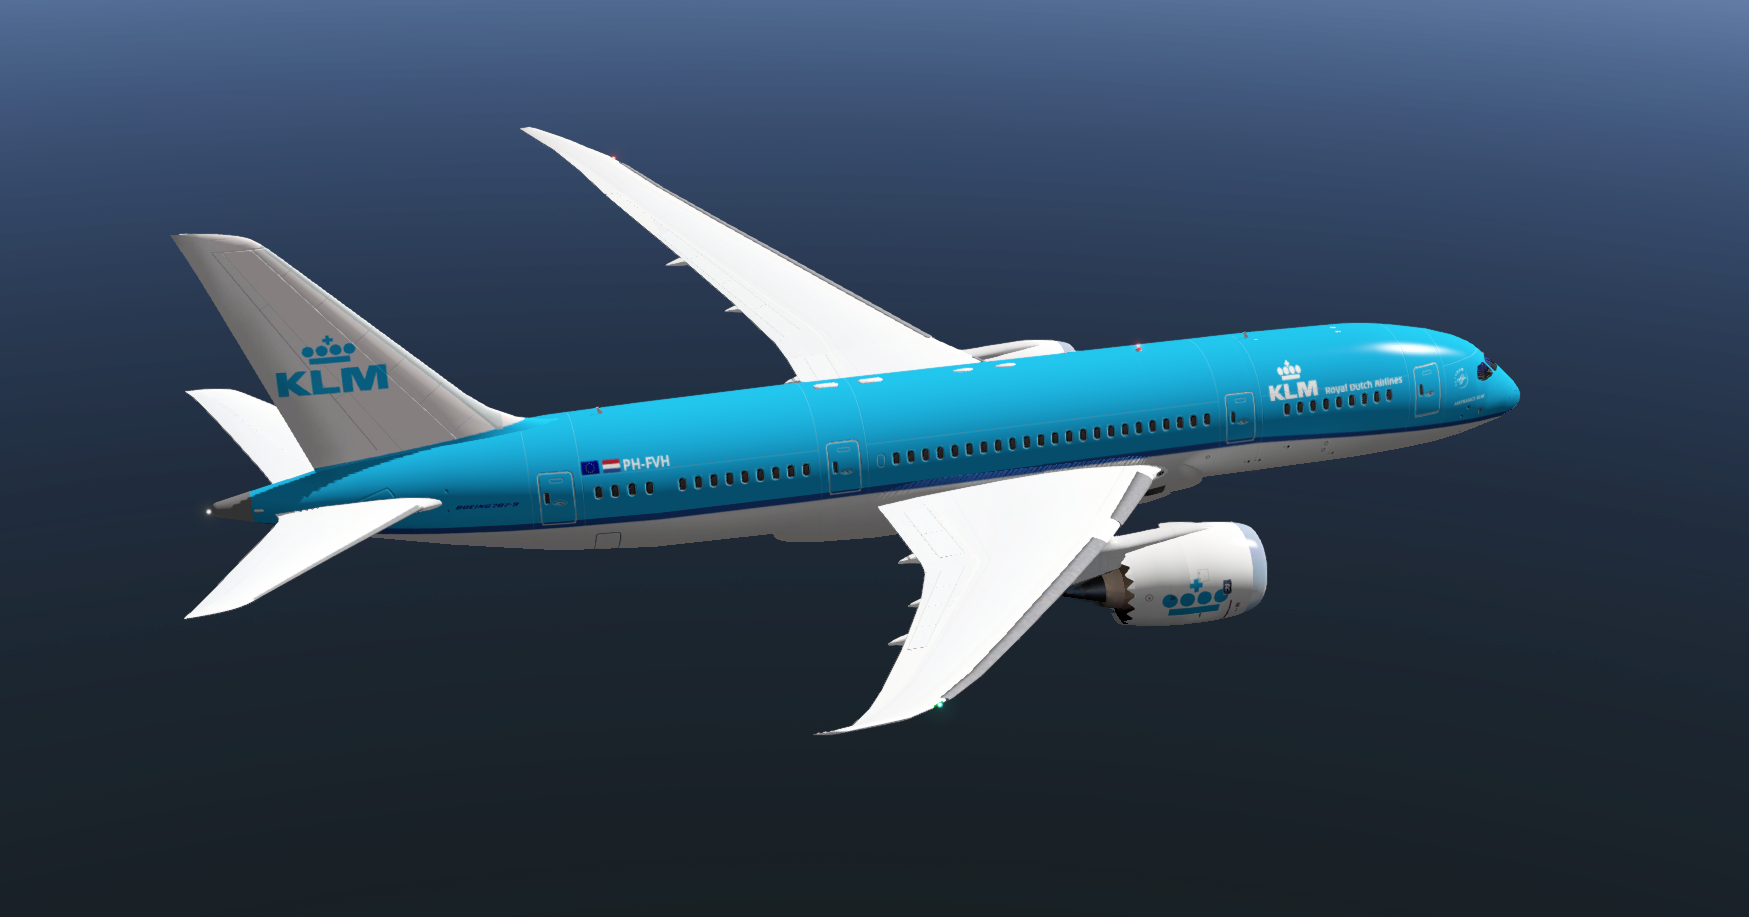 KLM for 787 Dreamliner by VMAX - 787 Dreamliner Skins - X